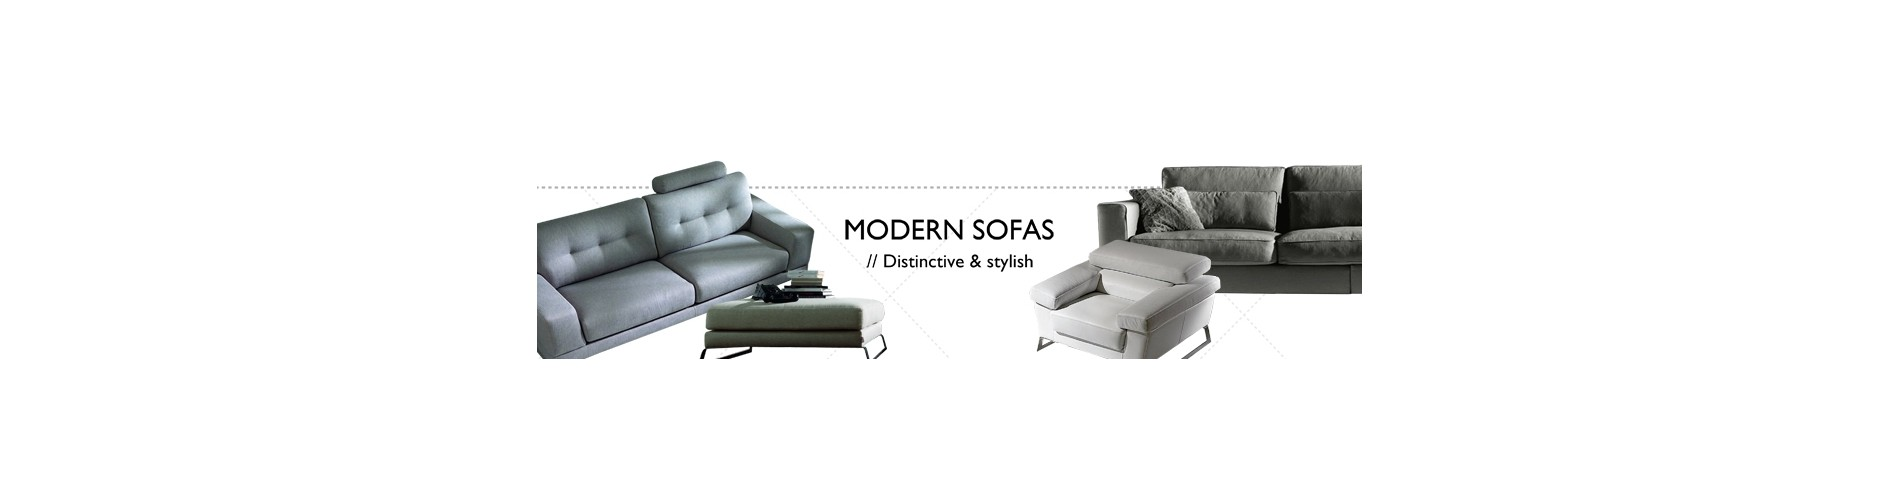 Modern Sofa Sets | 2 3 4 or 5 Seat Sofas with Armchairs & Pouffes